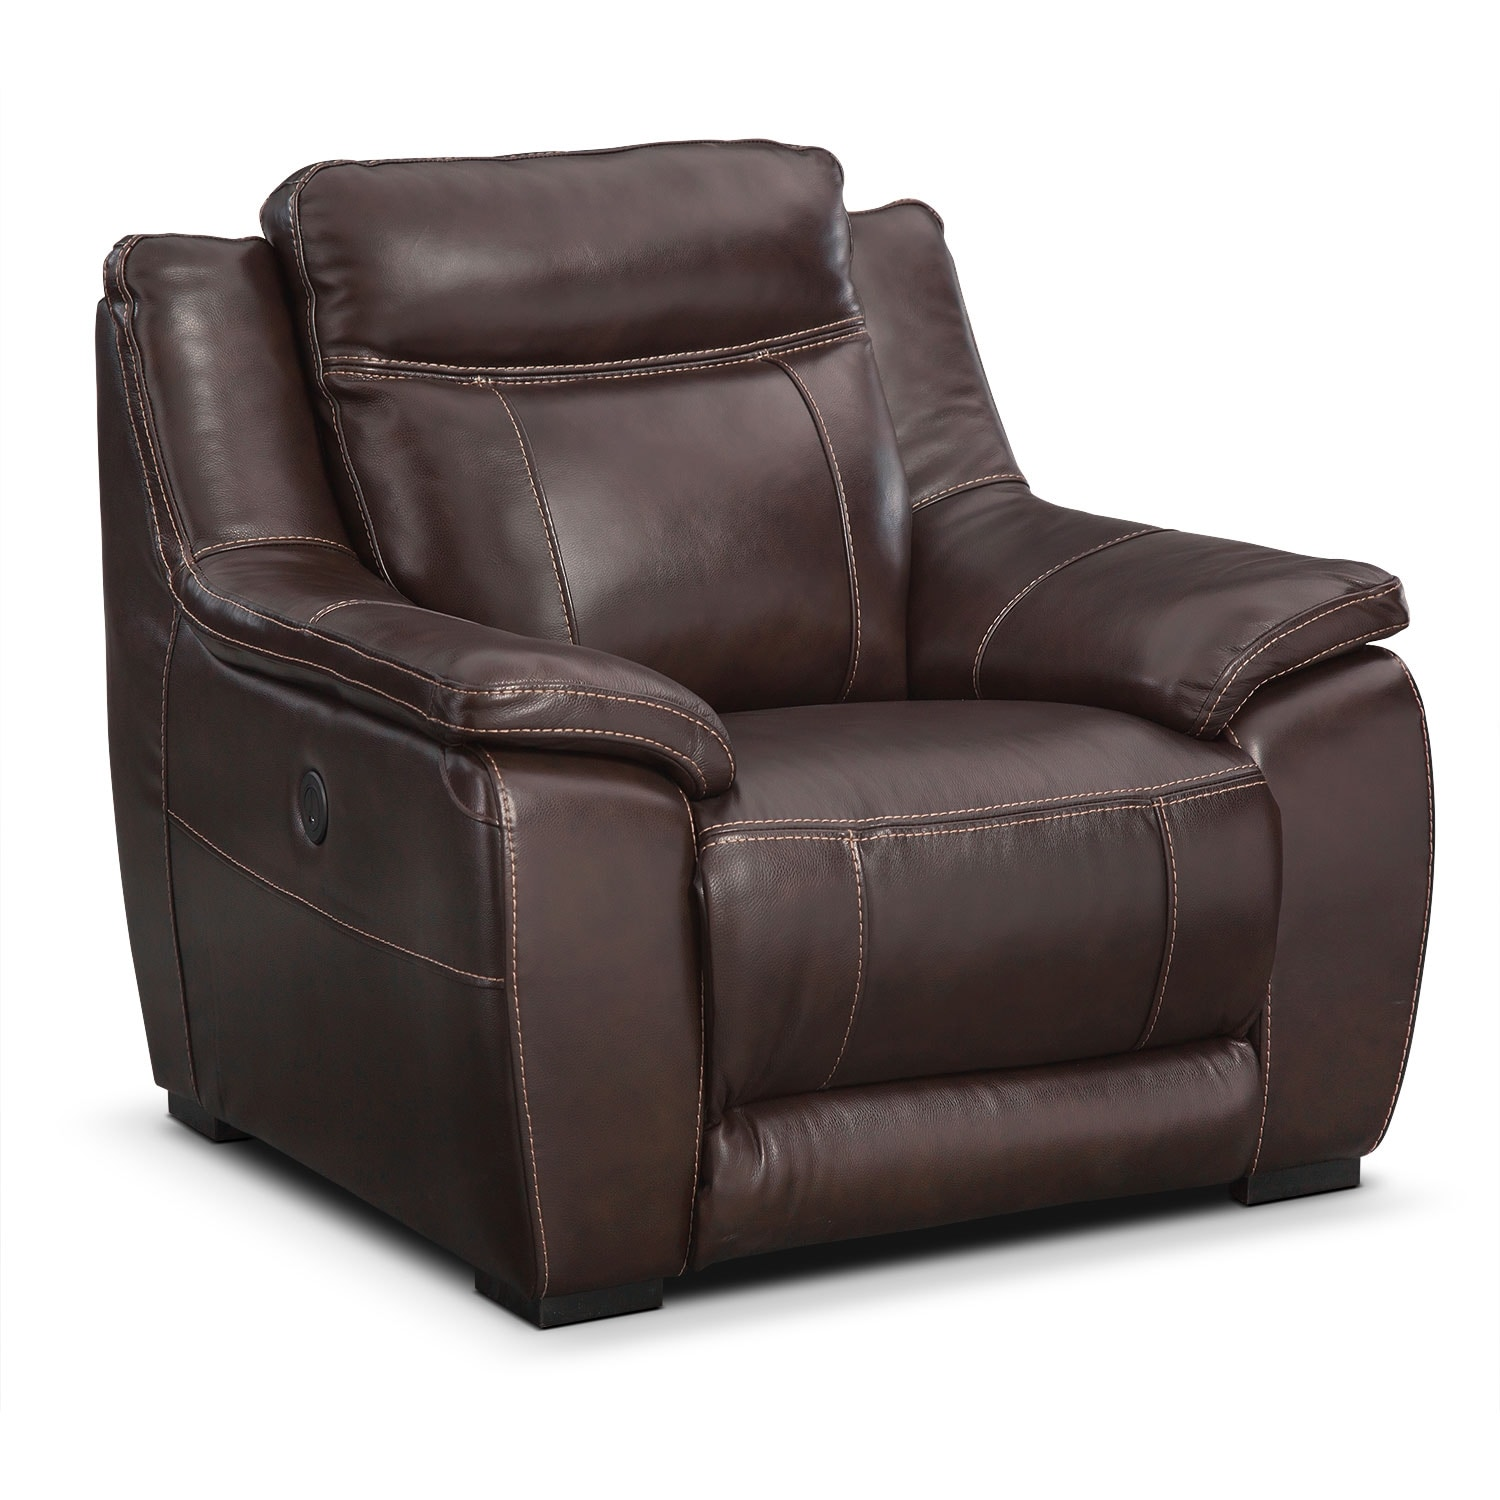 Lido Brown Power Recliner